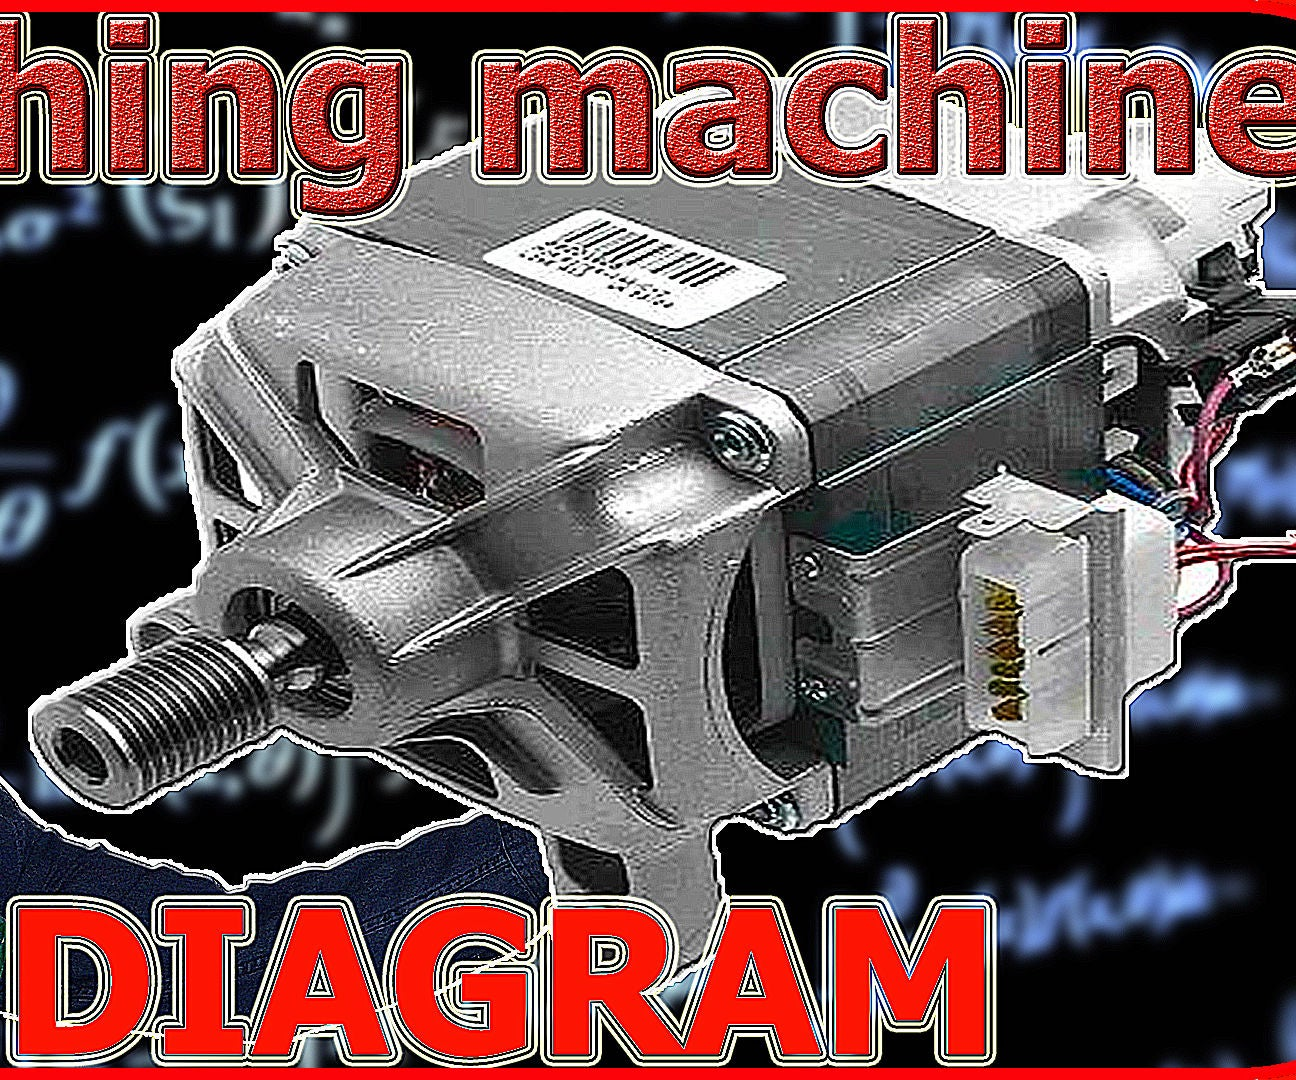 Washing Machine Motor Wiring Diagram : 6 Steps - InstructablesInstructables